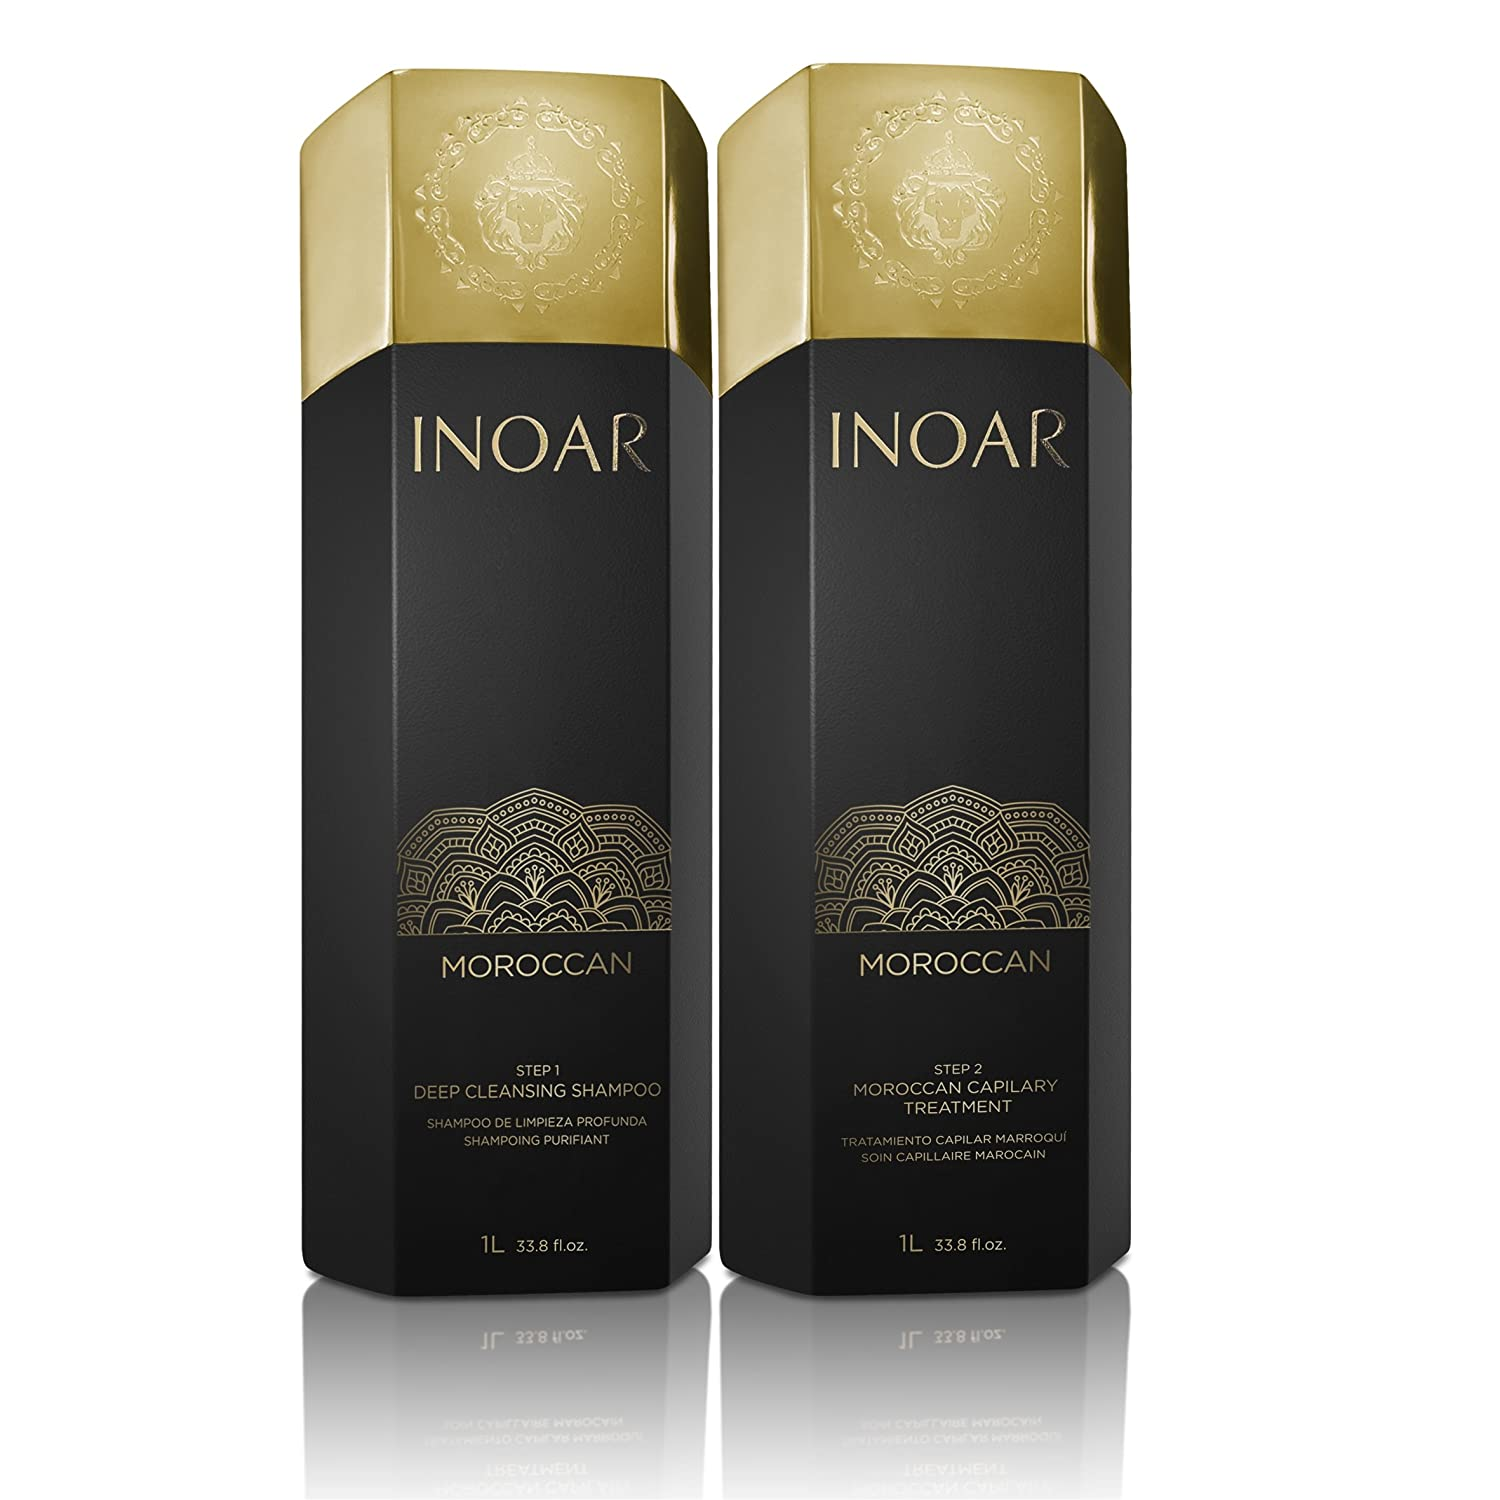 Inoar Morrocan Treatment Brazilian Blow Dry Treatment Set - 1 Litre x 2: Amazon.es: Salud y cuidado personal